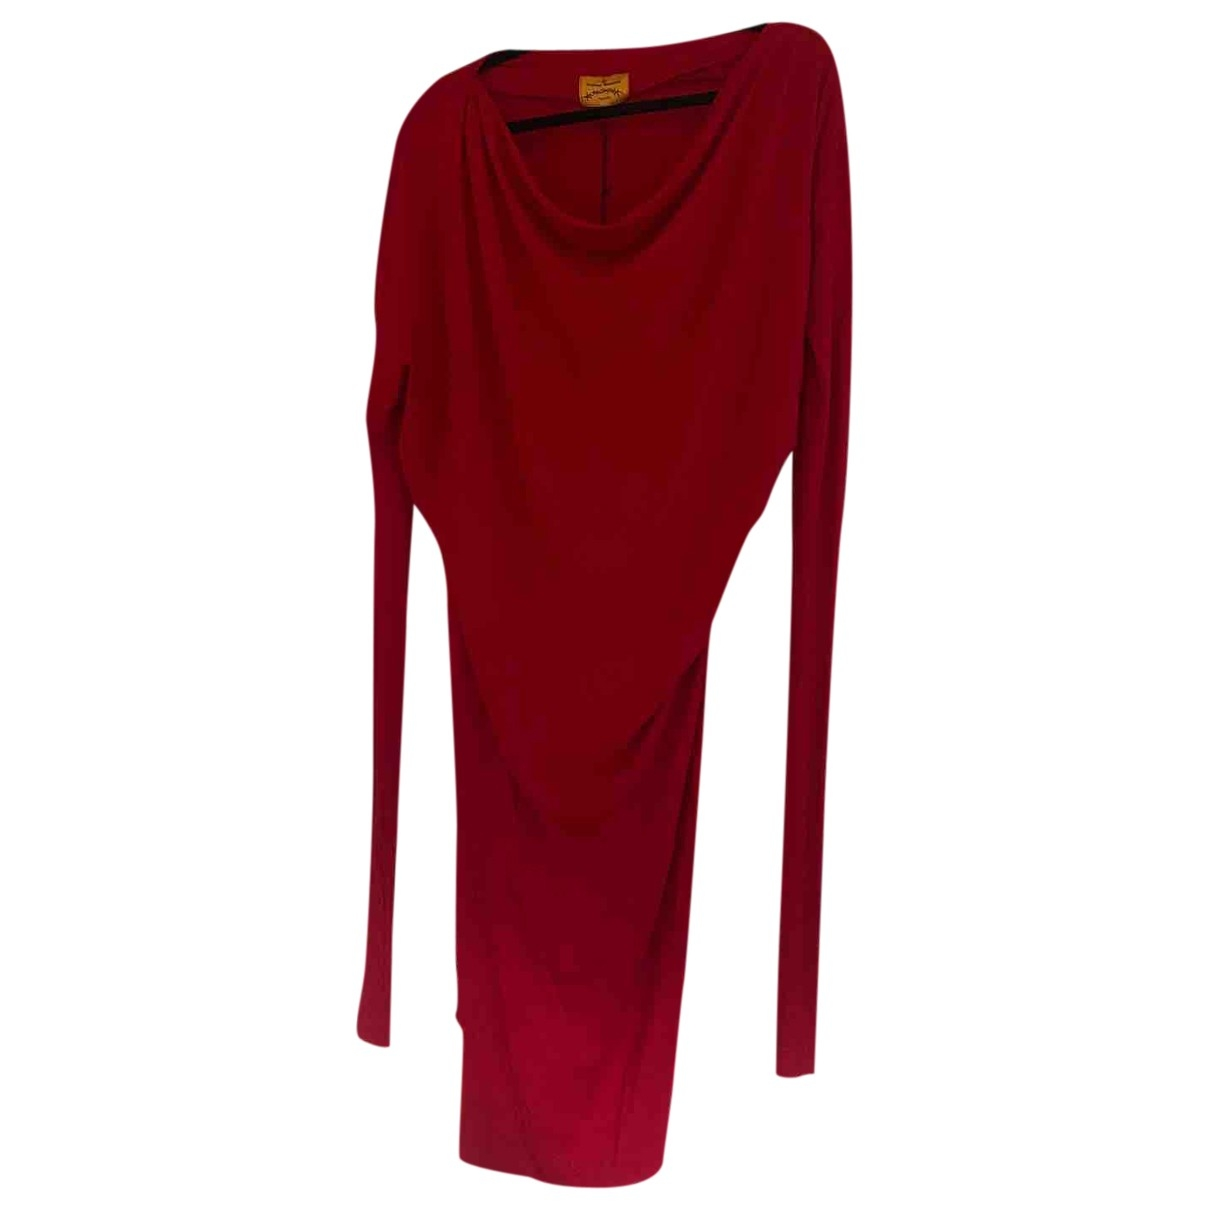 Vivienne Westwood Anglomania - Robe   pour femme - rouge